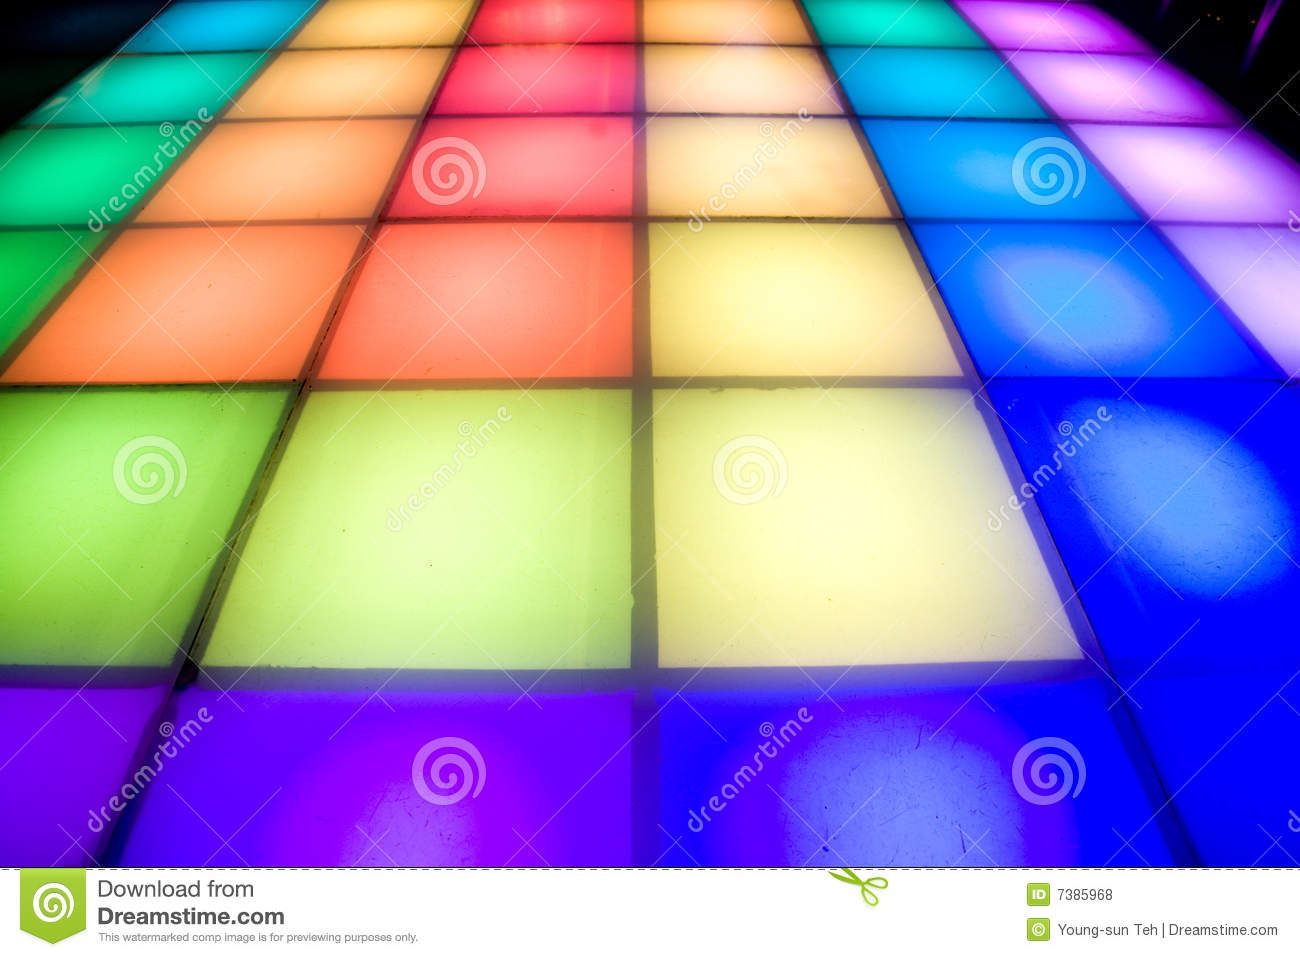 Disco dance floor with colorful lighting royalty free for 123 get on the dance floor song download